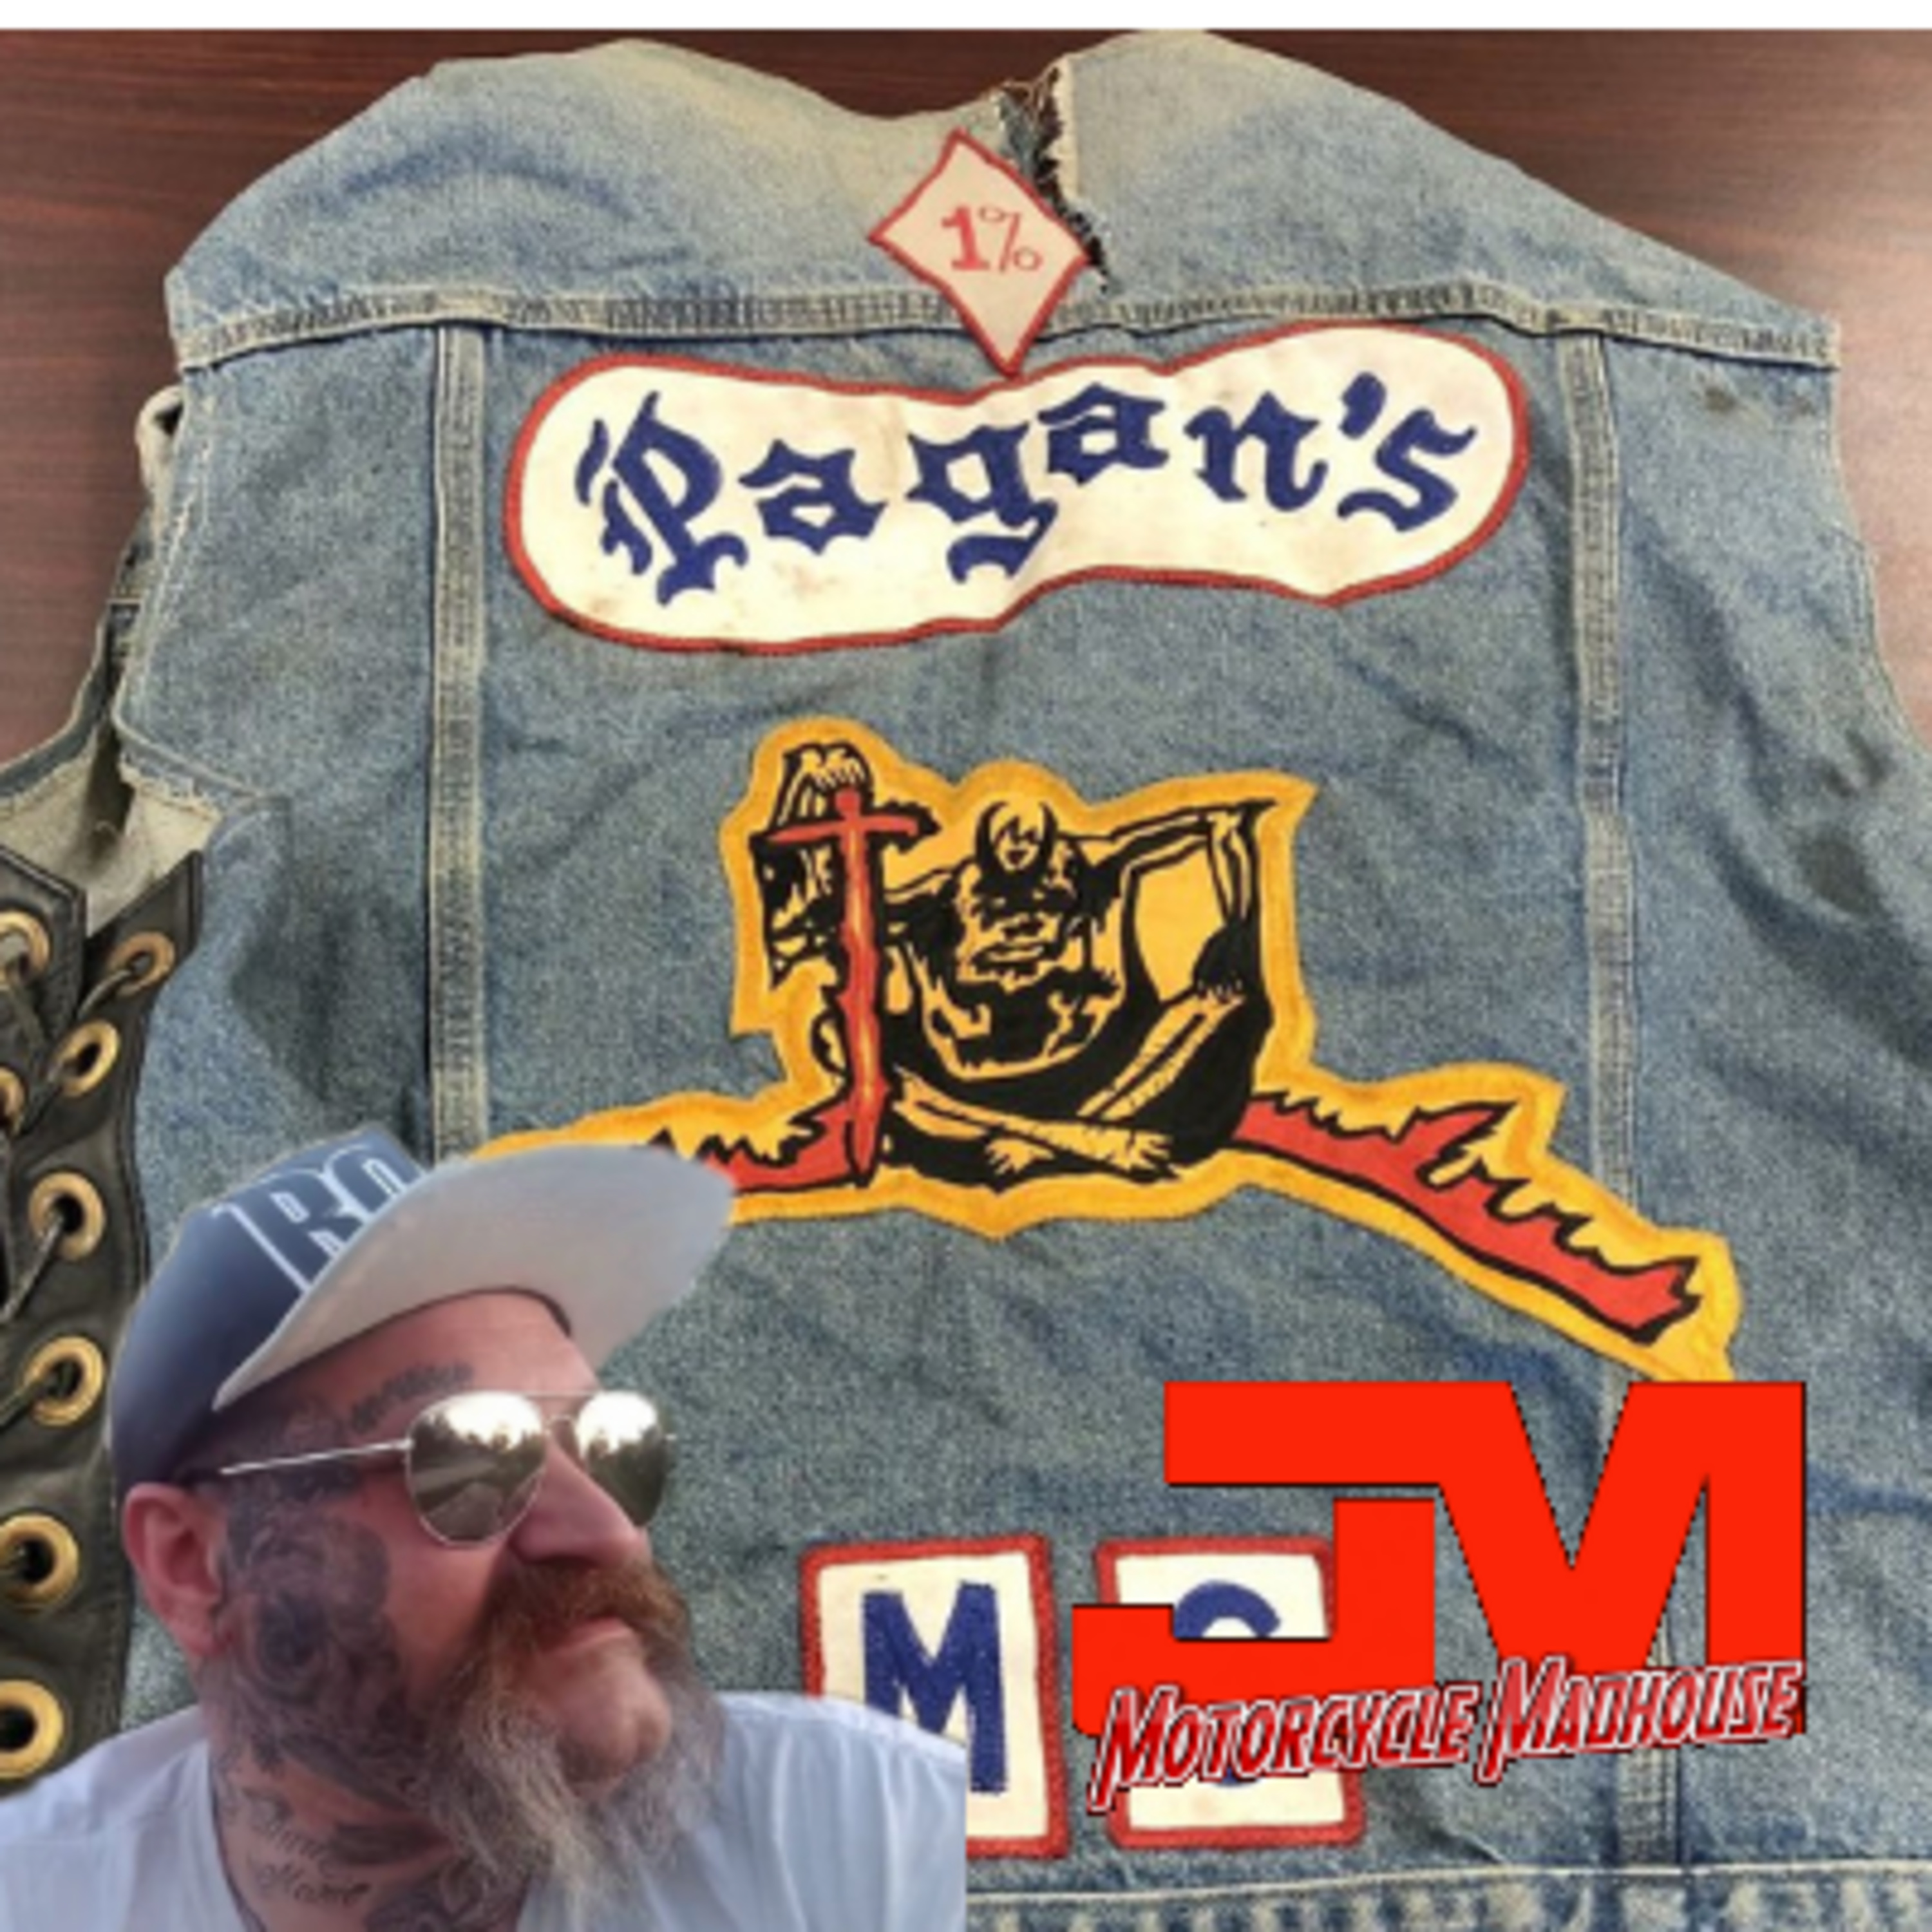 Season 1 Episode 2 Weekly Biker News Wrap Up All your Outlaw Biker News, Independent Biker News and More